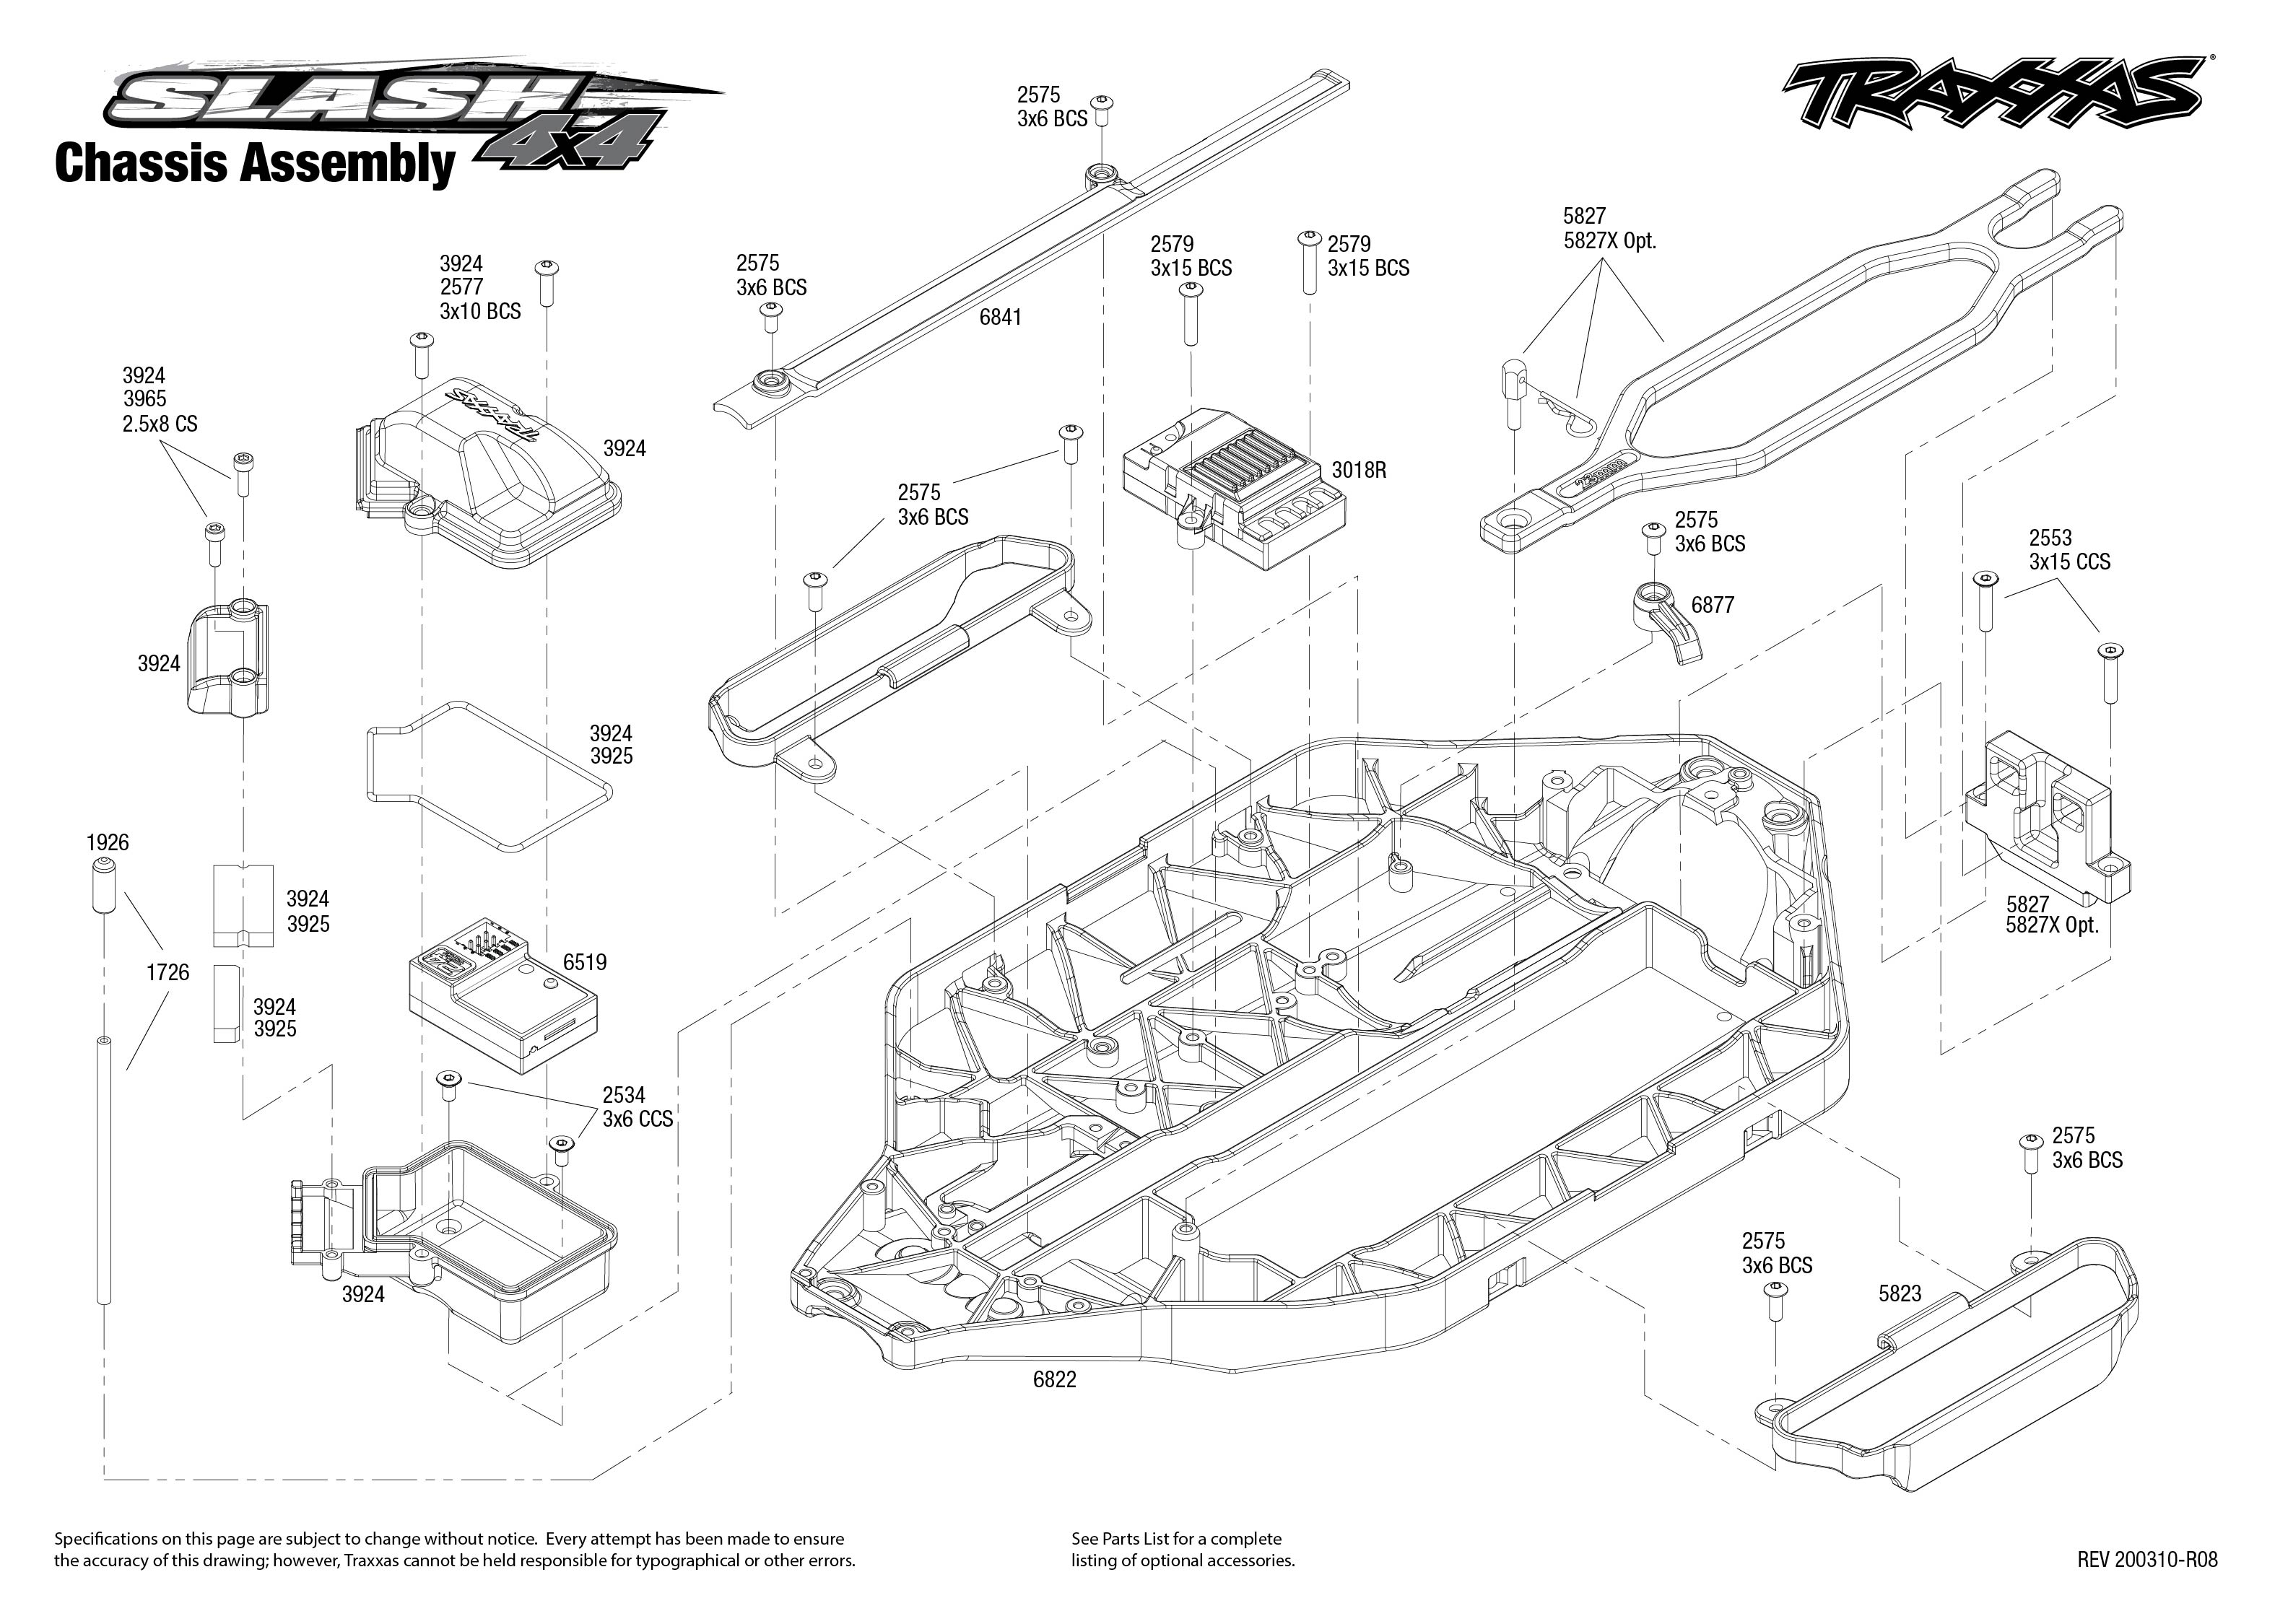 Traxxas Slash 4X4 RTR 1/10 Brushed Electric Short Course